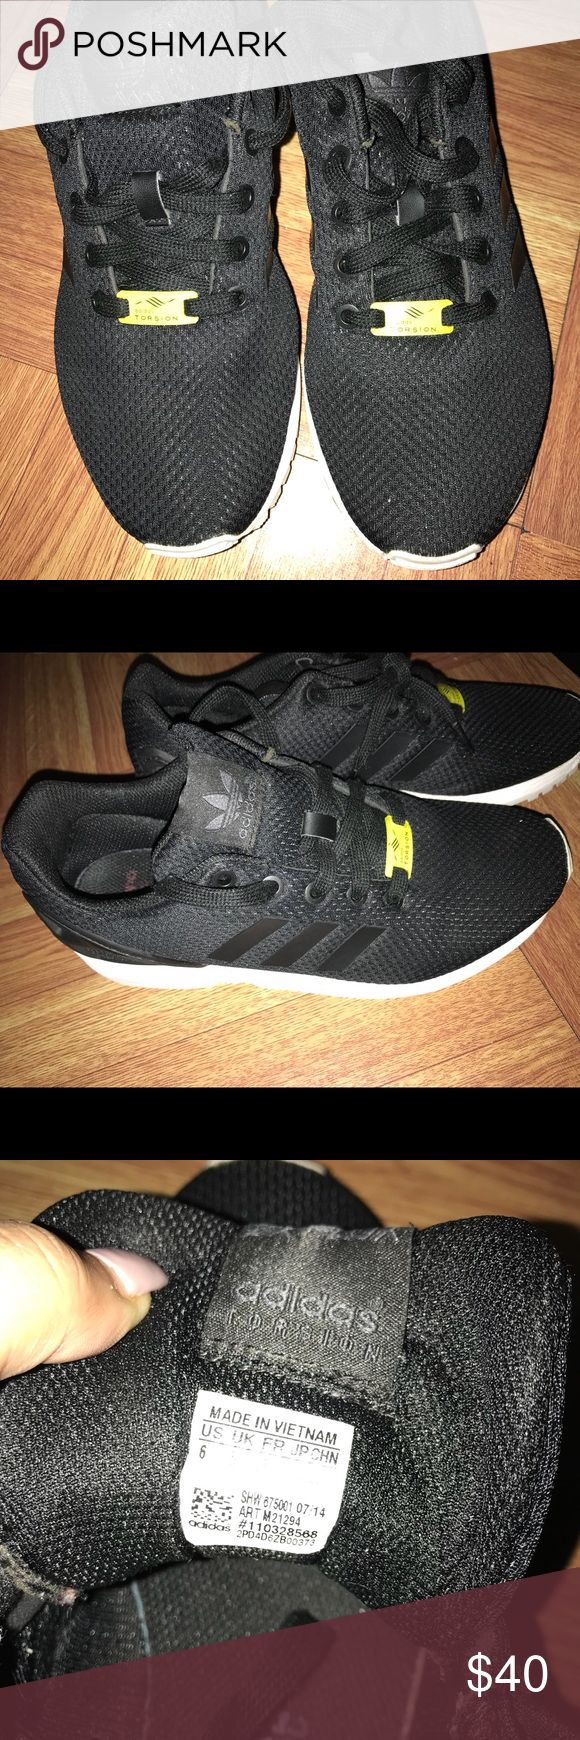 Adidas torsion ZX Flux Very comfortable sneakers. Worn a couple of times. Size 6. Selling for $35. Need gone ASAP. adidas Shoes Athletic Shoes